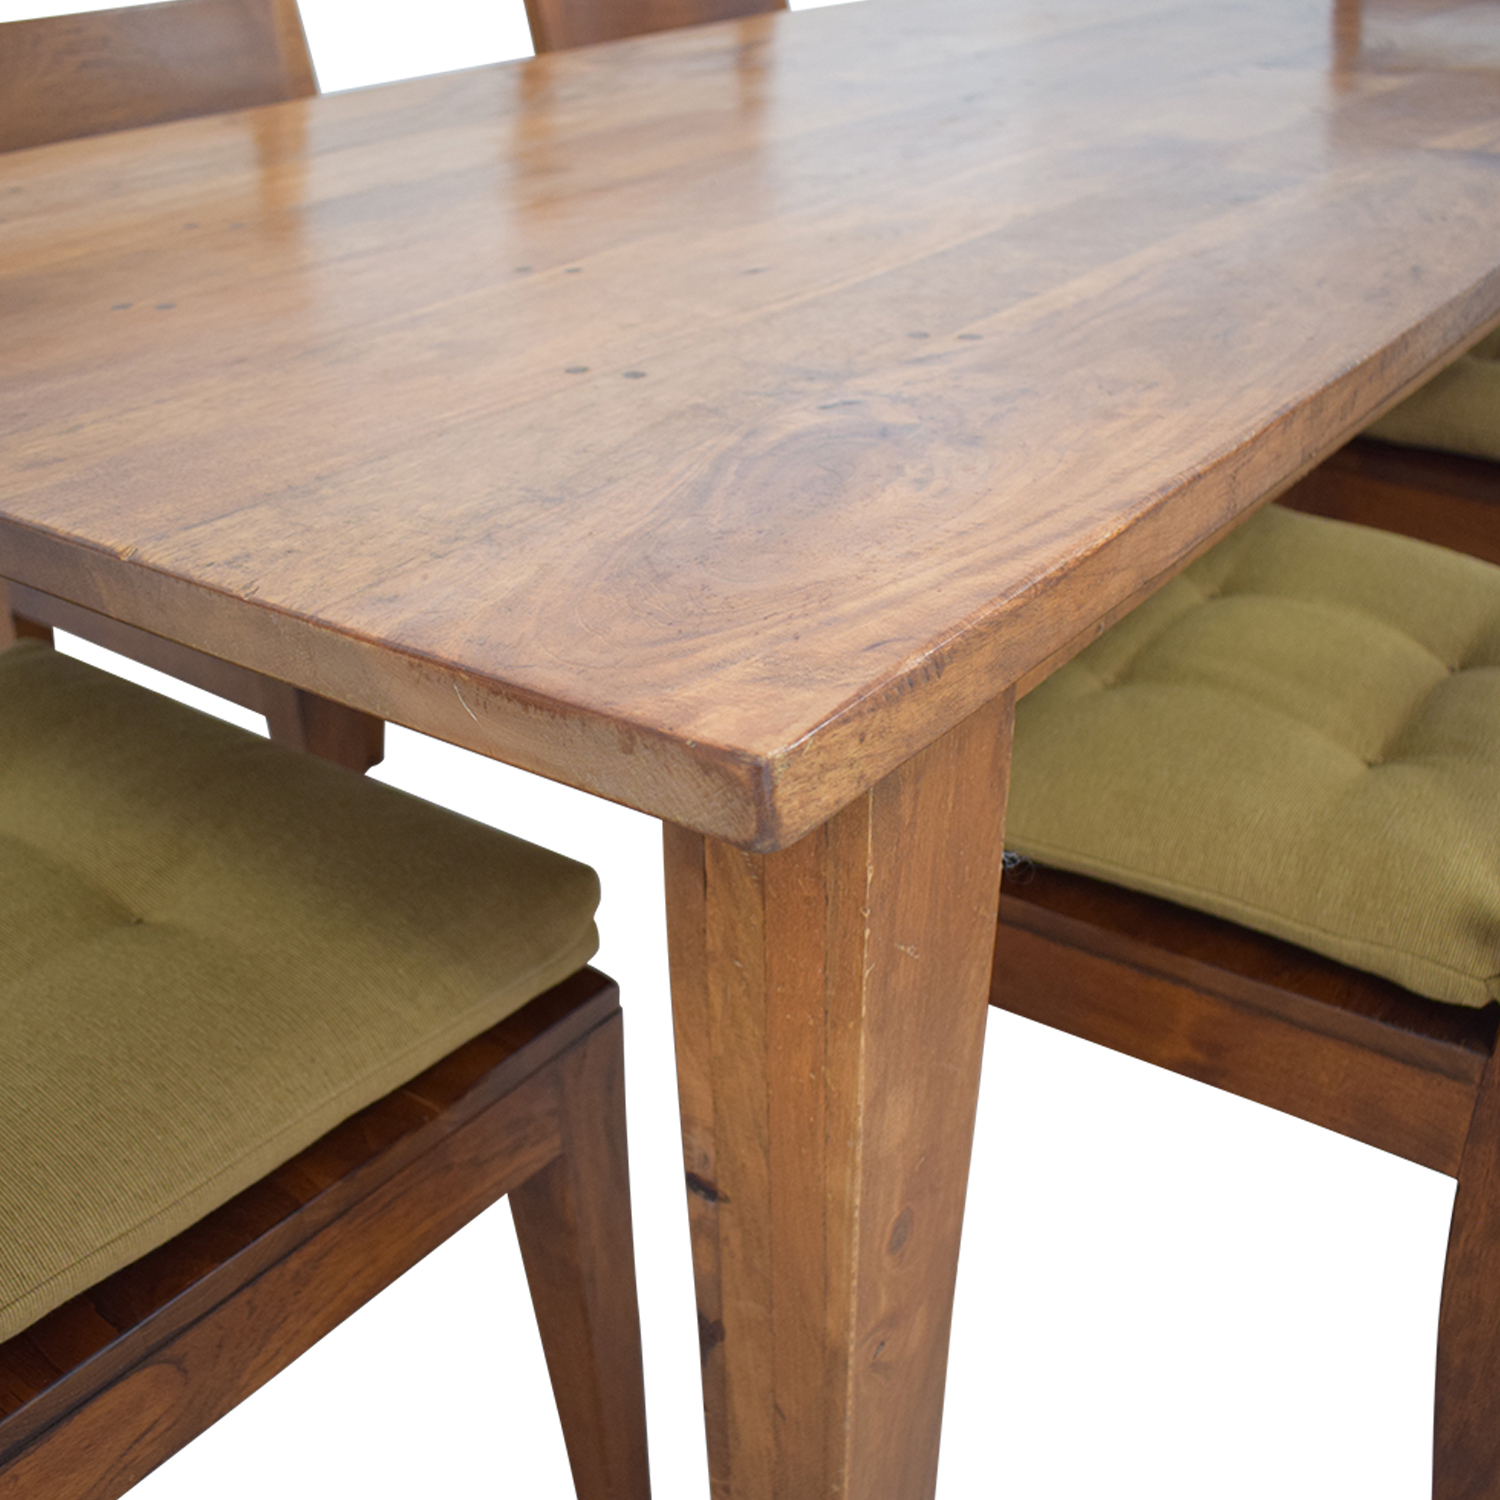 Crate & Barrel Basque Dining Table and Six Chairs / Tables